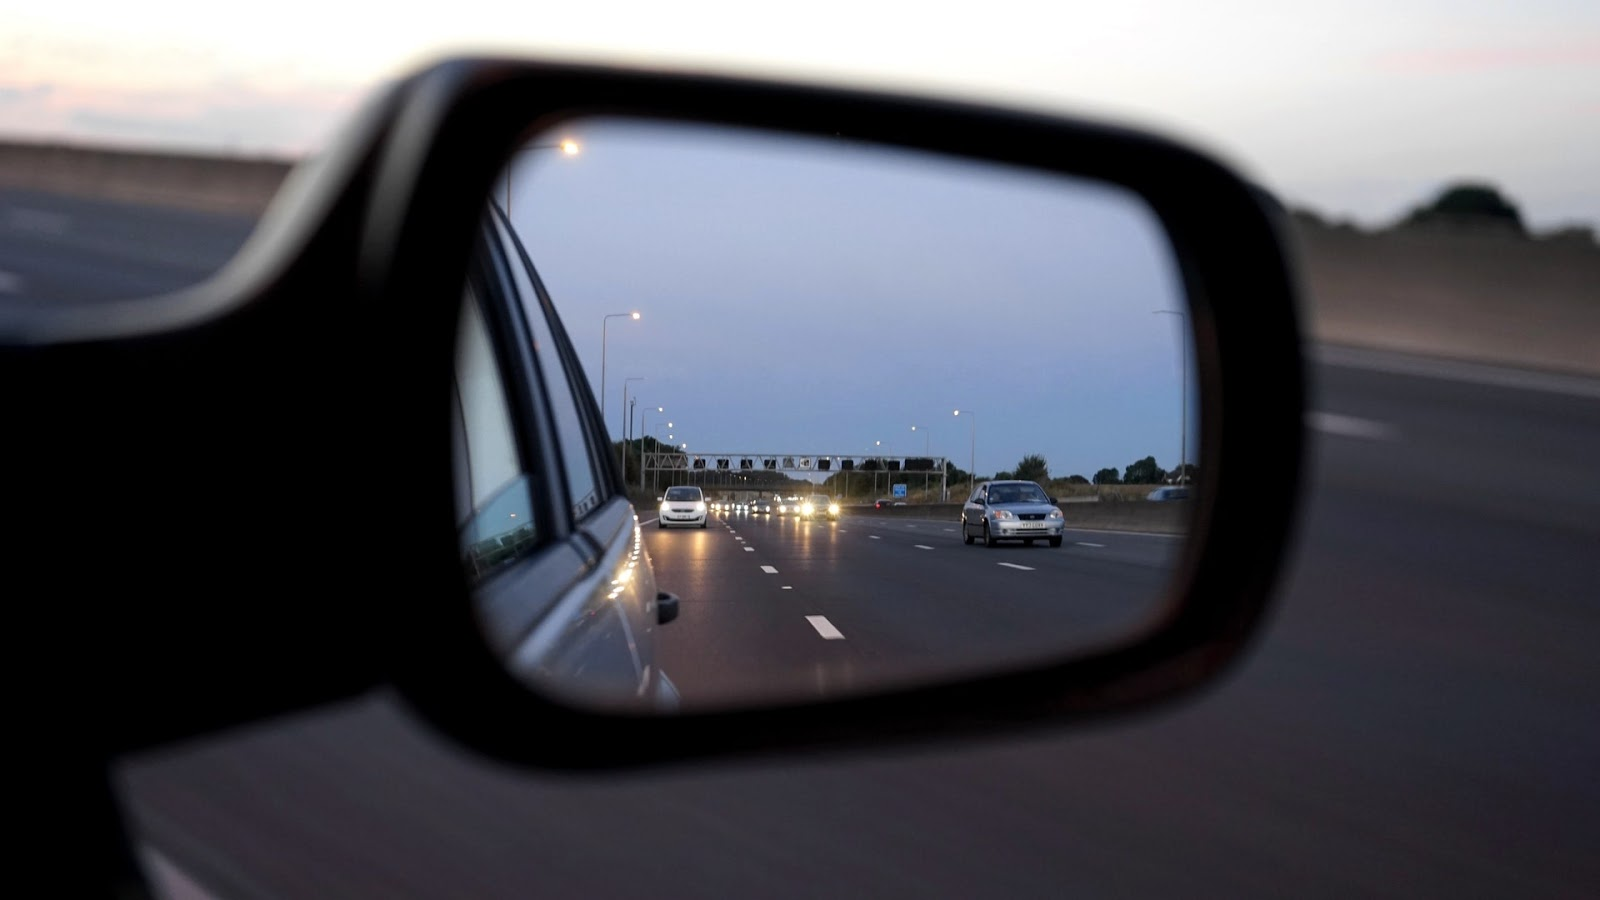 side-view mirror